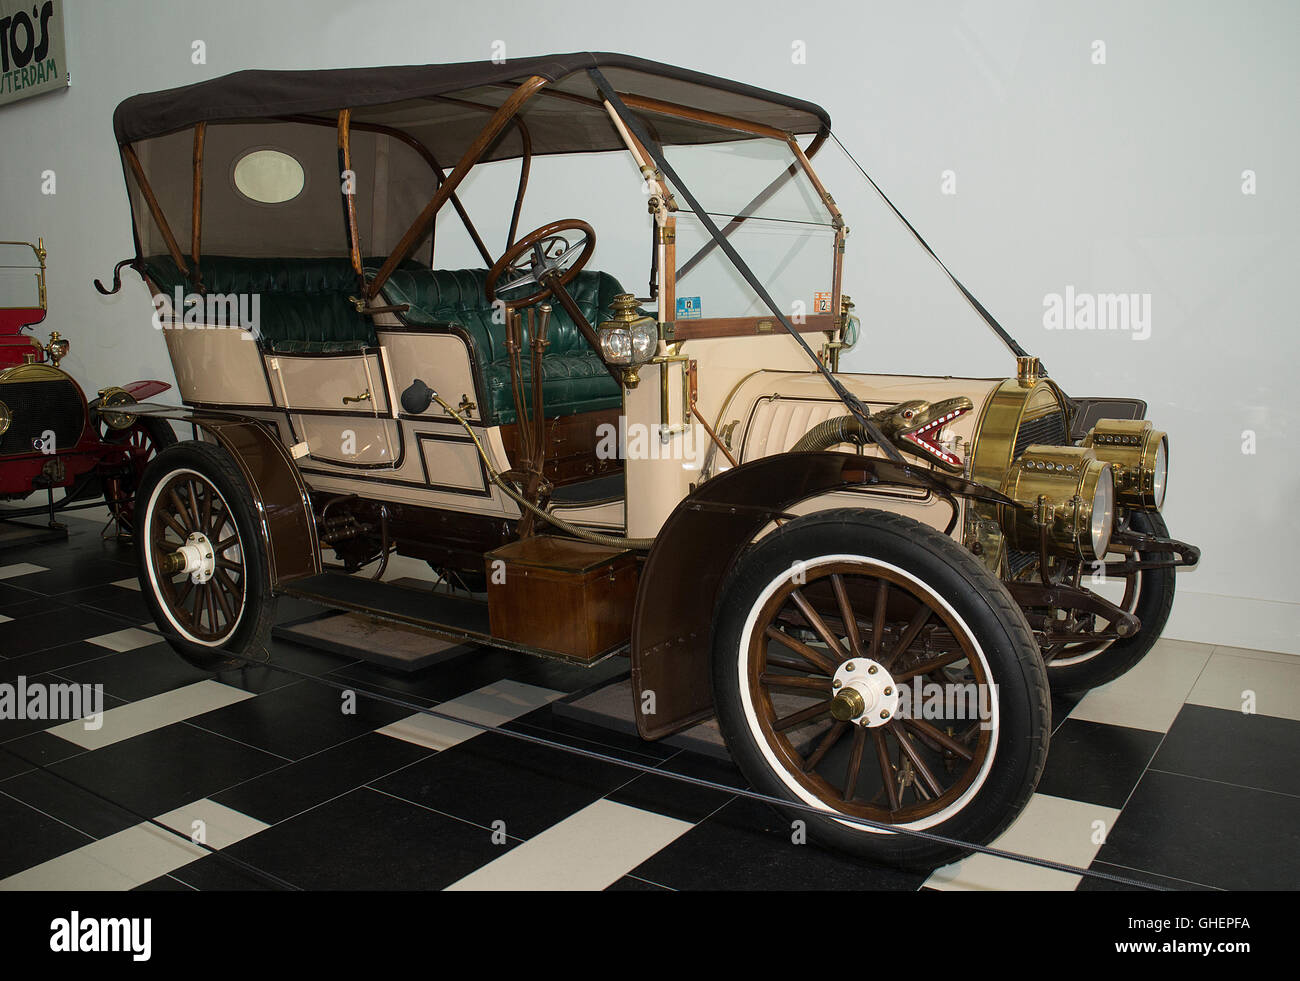 A 1907 Spyker 15/22-HP Double Phaeton at the Louwman Museum, The Hague, Netherlands Stock Photo